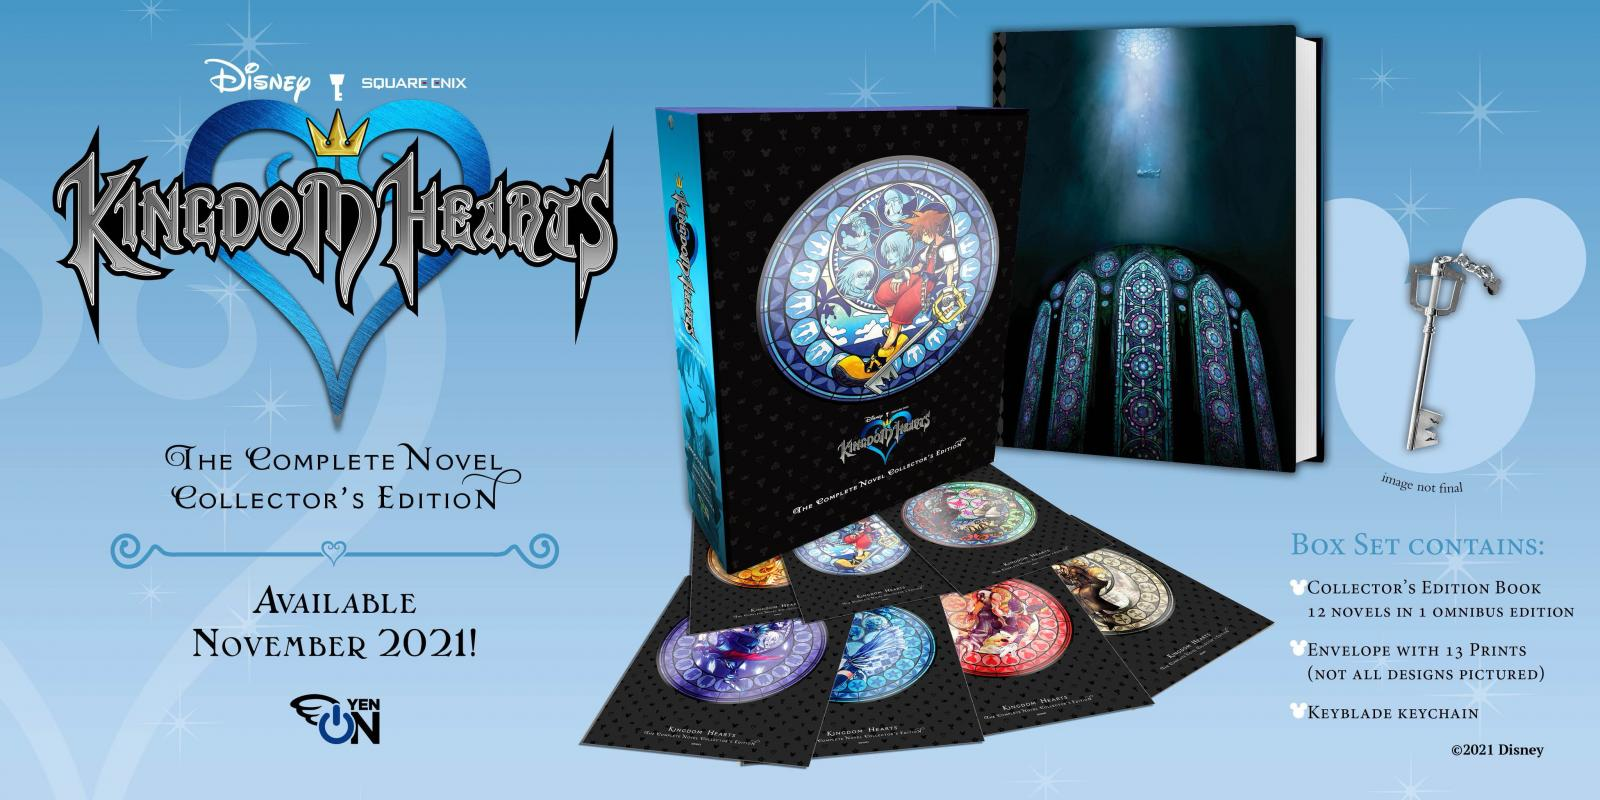 Kingdom Hearts: The Complete Novel Collector's Edition